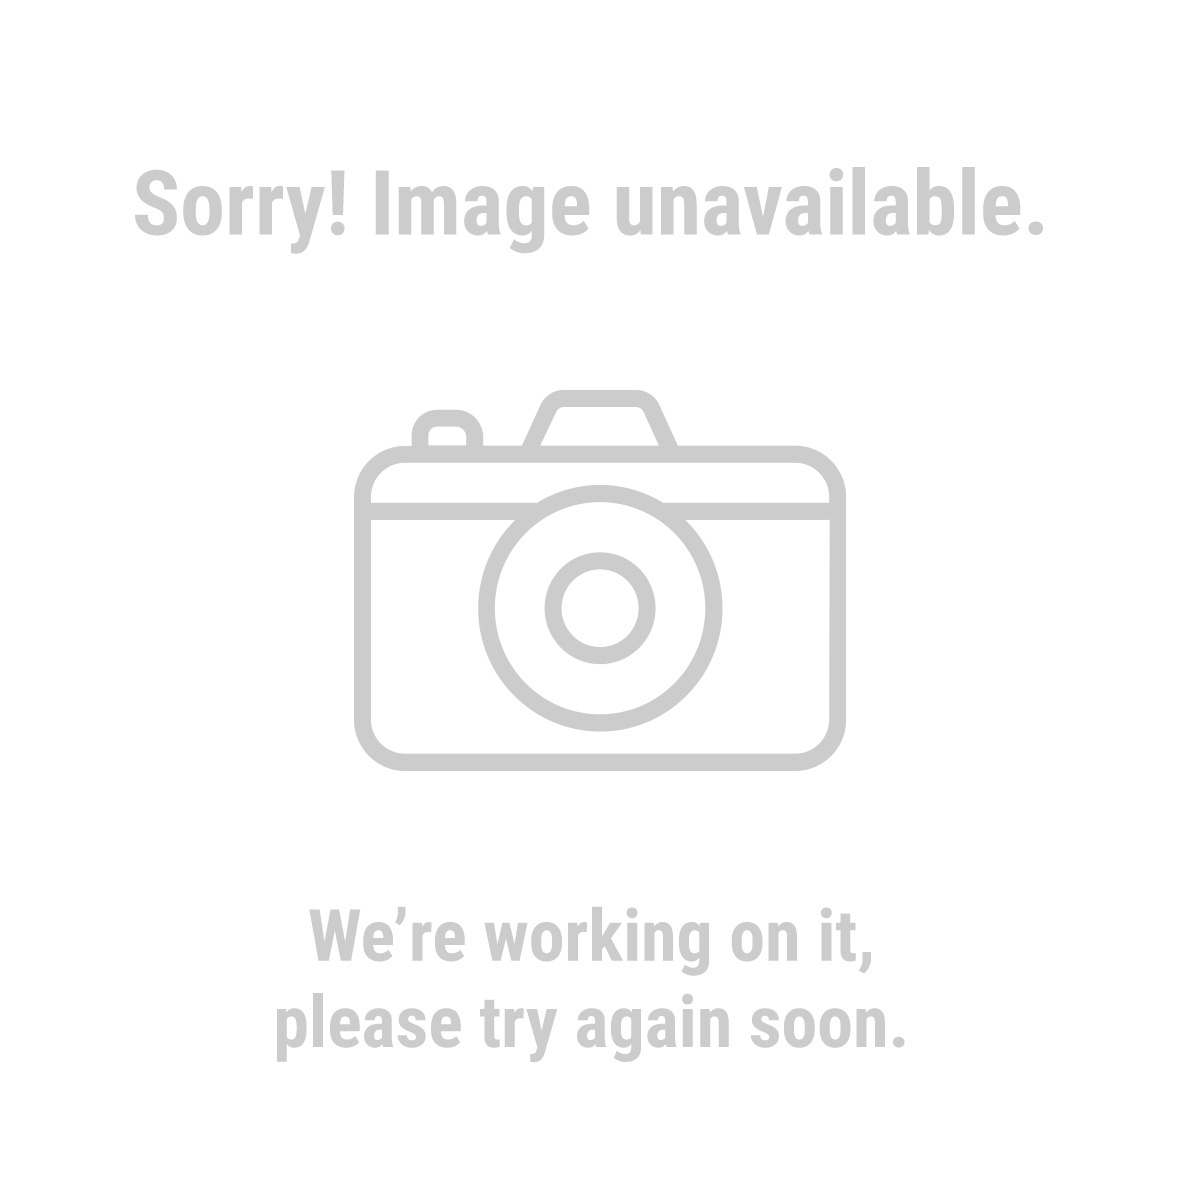 10 Piece 1/2 in. Drive SAE Color Coded Socket Set